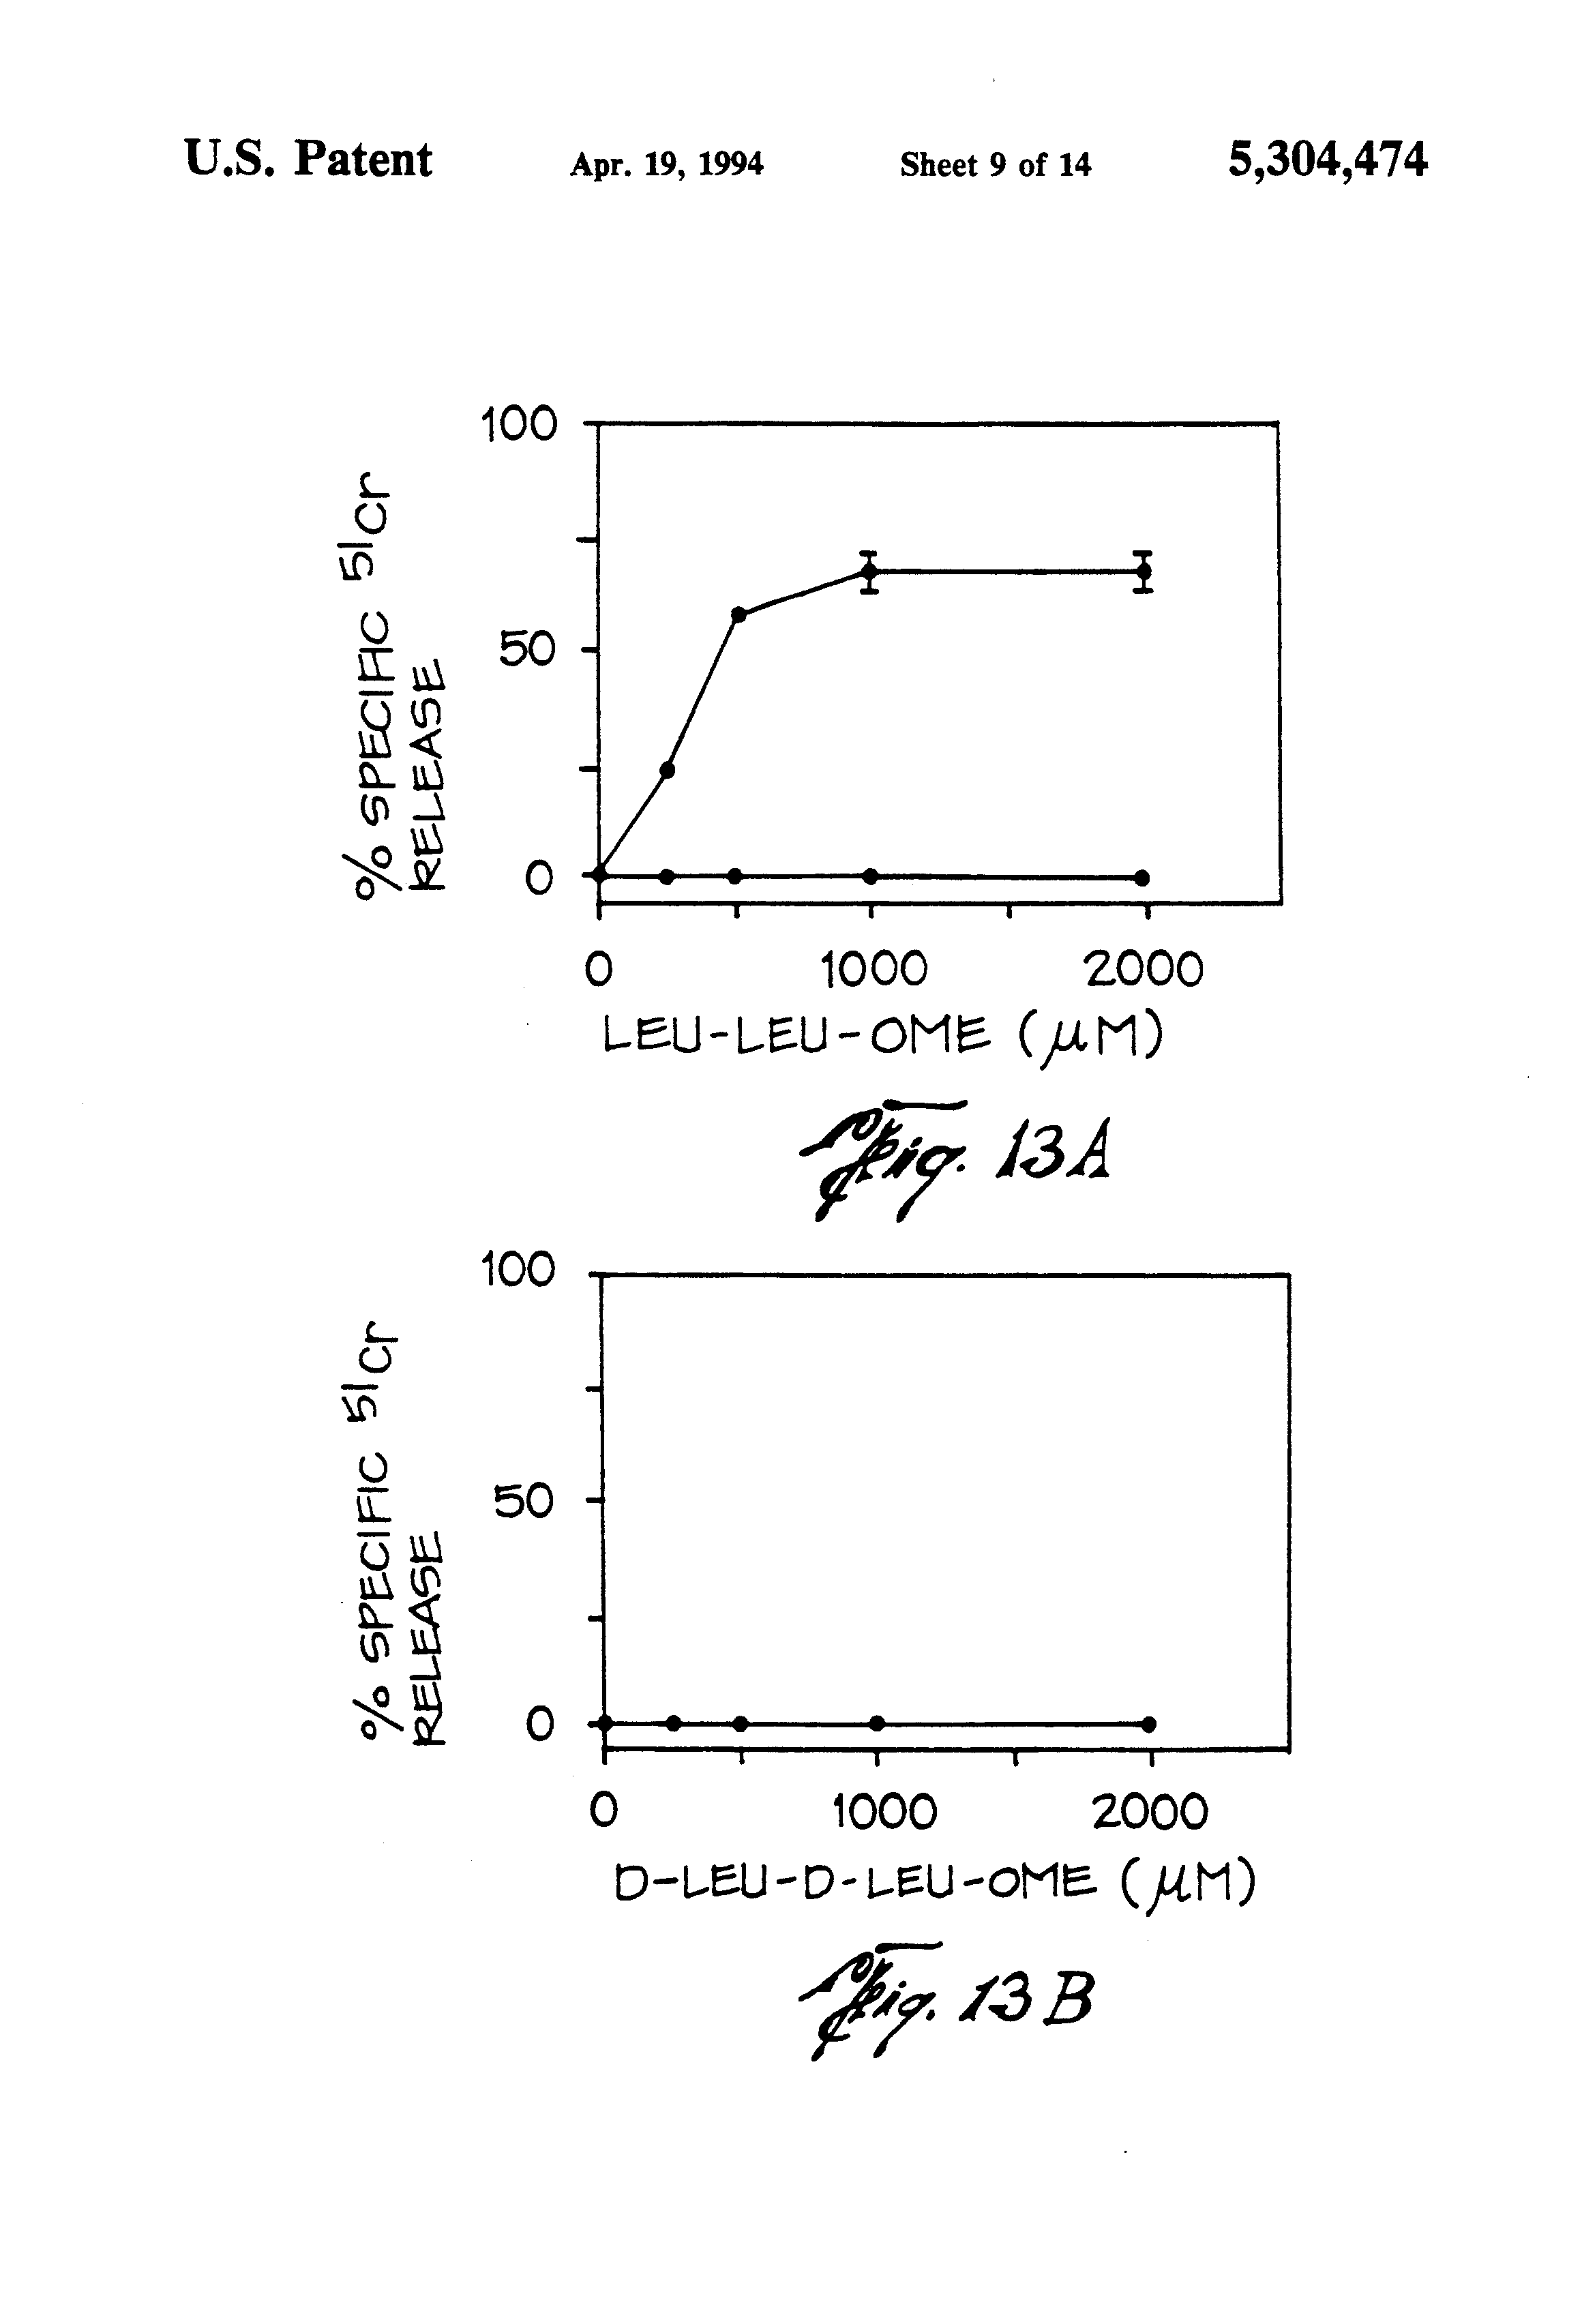 US5068223A - Hydrophobic peptide esters and amides - Google Patents